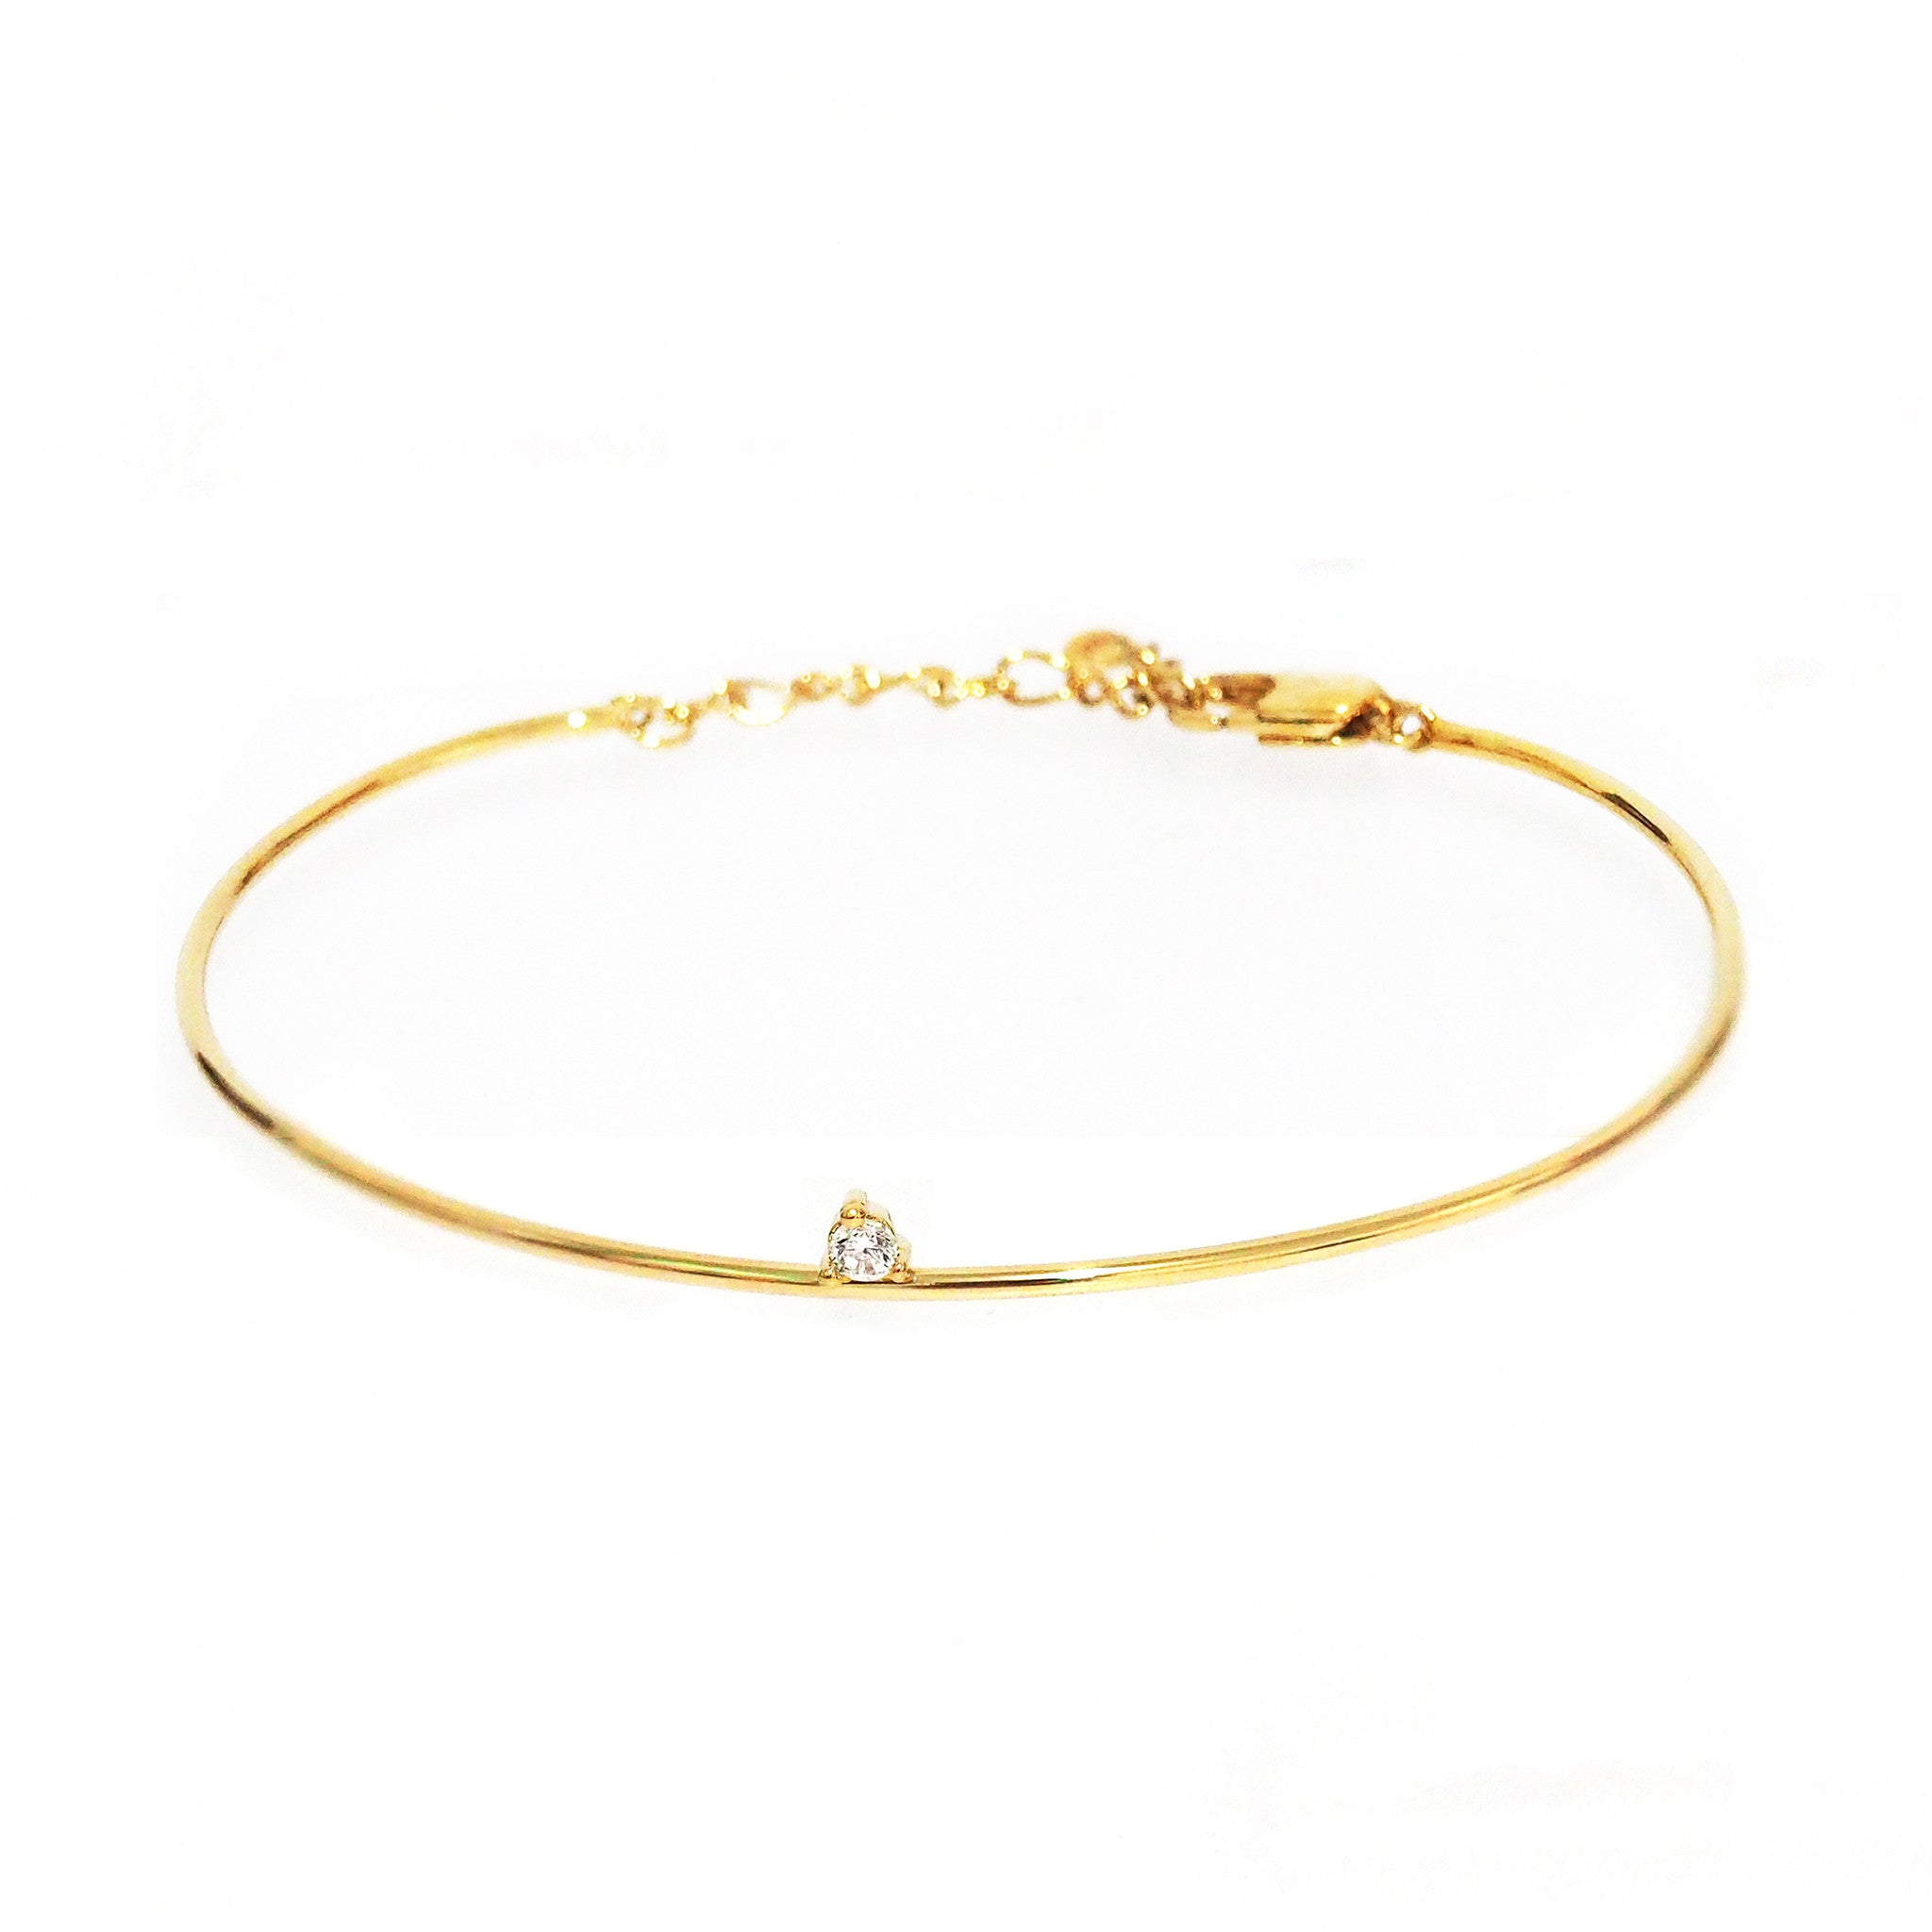 gold bangle tone givenchy in with rose bangles nocolor bracelets lyst bracelet faceted stones jewelry metallic stone